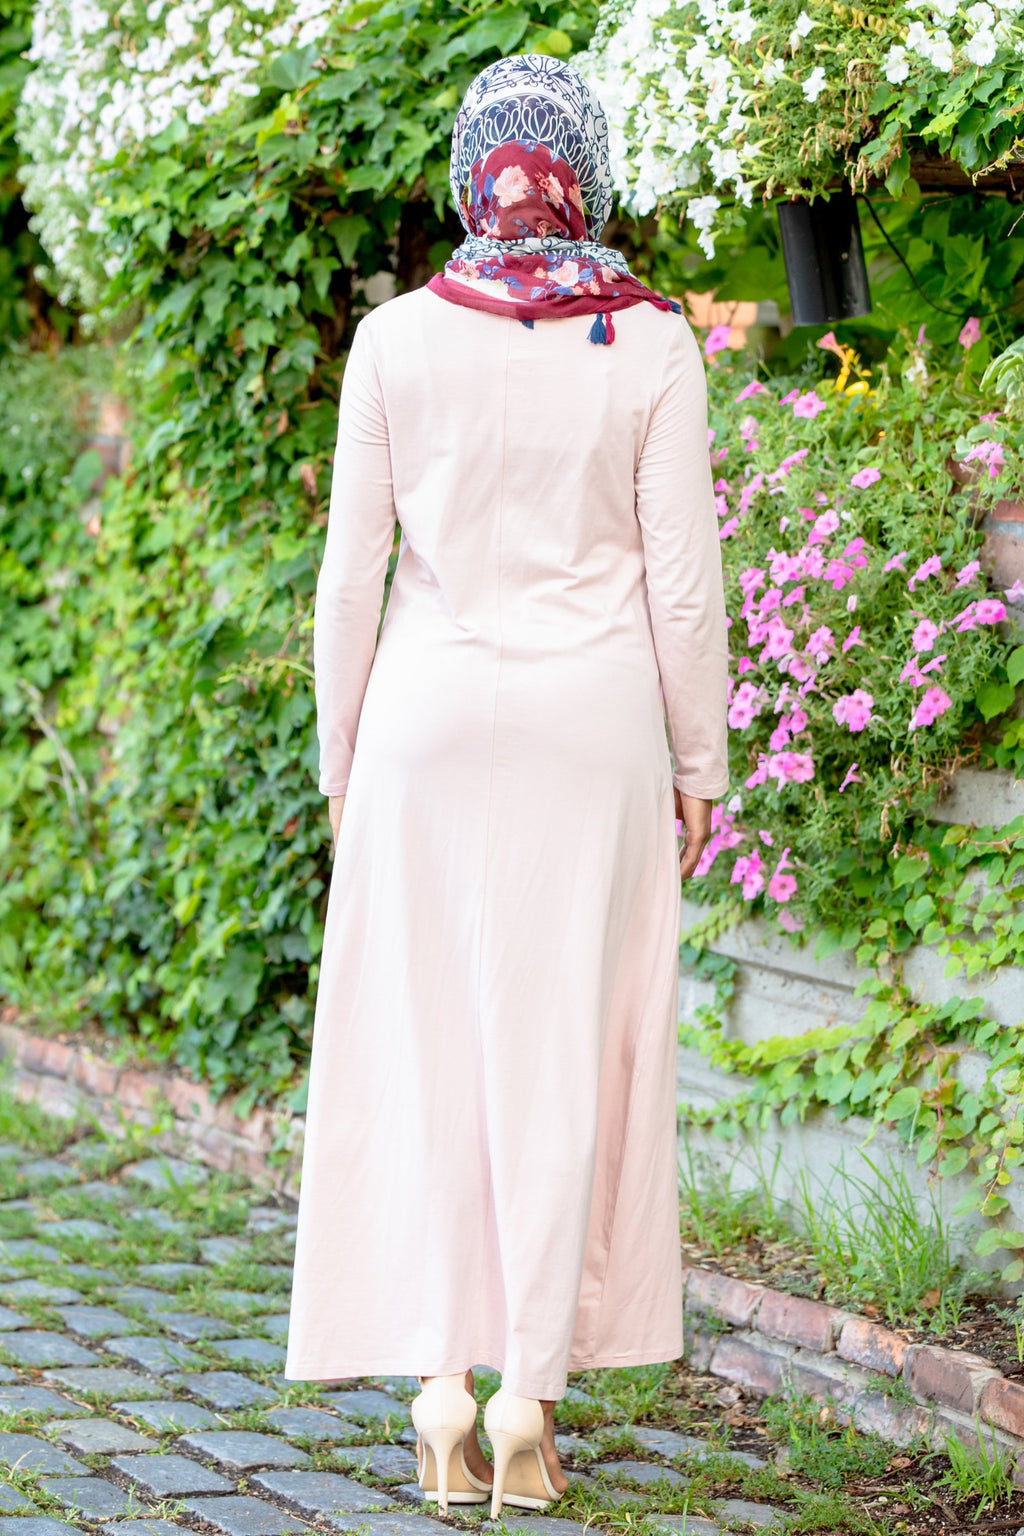 Pale Pink Cotton Long Sleeve Maxi Dress-Clearance - Abaya, Hijabs, Jilbabs, on sale now at UrbanModesty.com